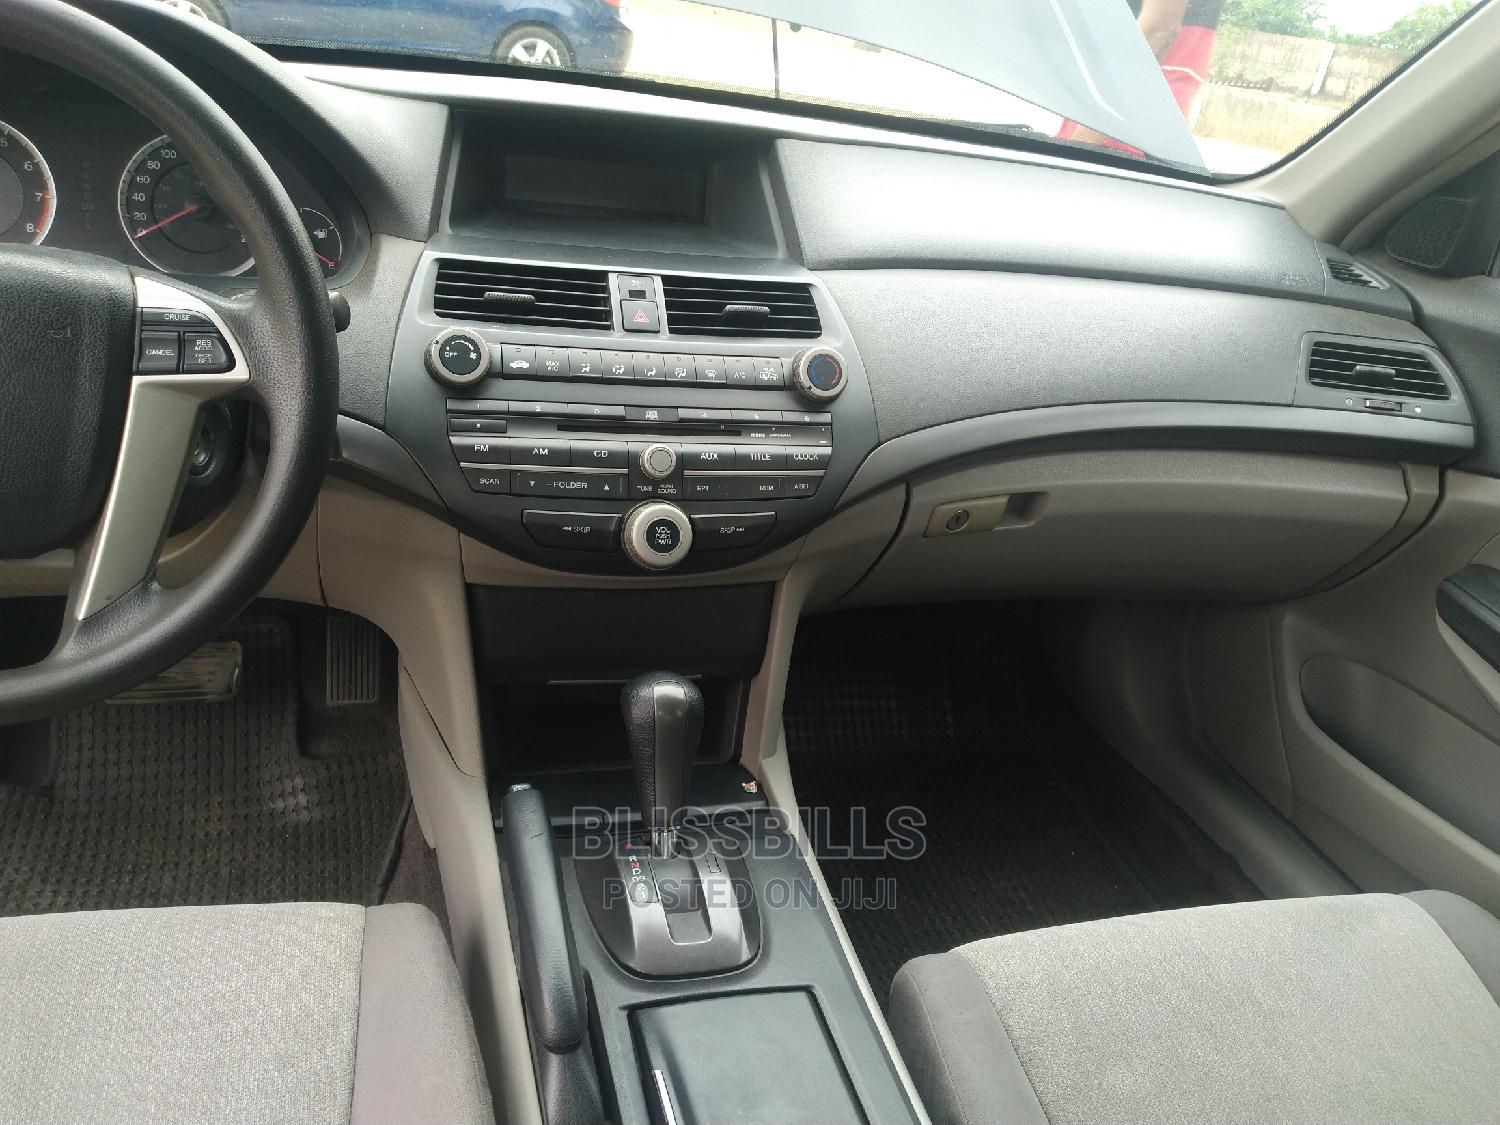 Honda Accord 2008 2.4 EX Automatic Black | Cars for sale in Central Business Dis, Abuja (FCT) State, Nigeria